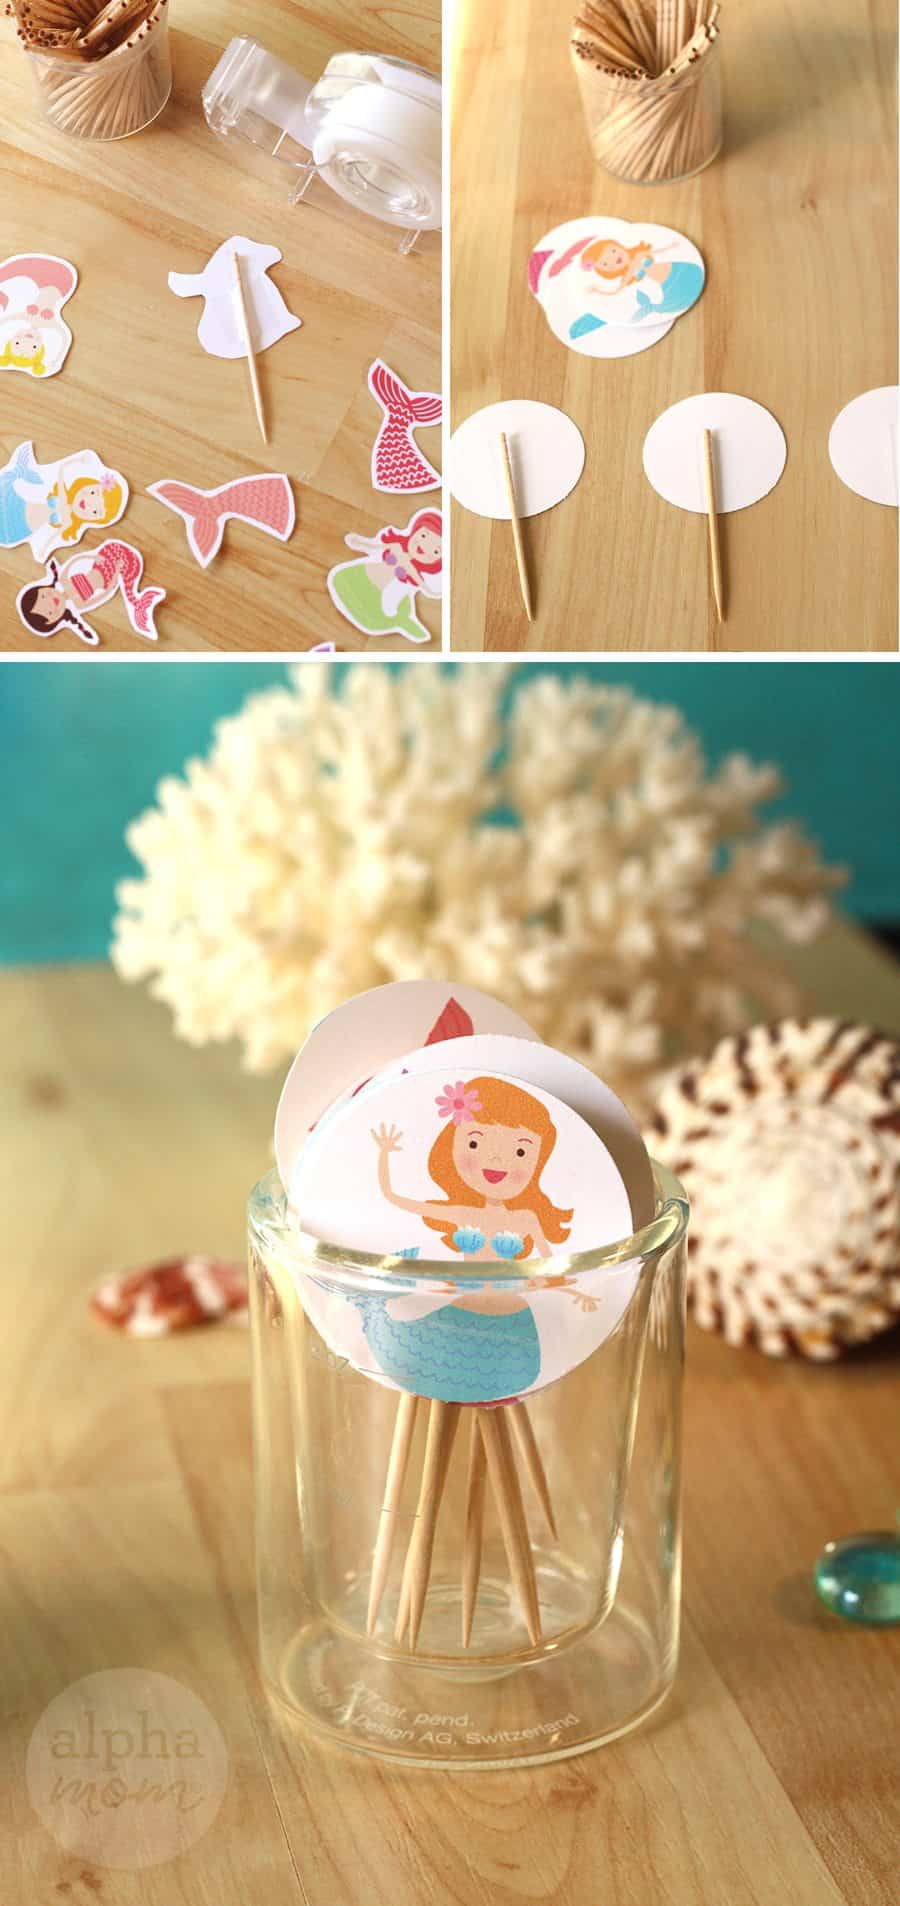 Mermaid Party: Cupcake Toppers (printable how-to) by Brenda Ponnay for Alphamom.com